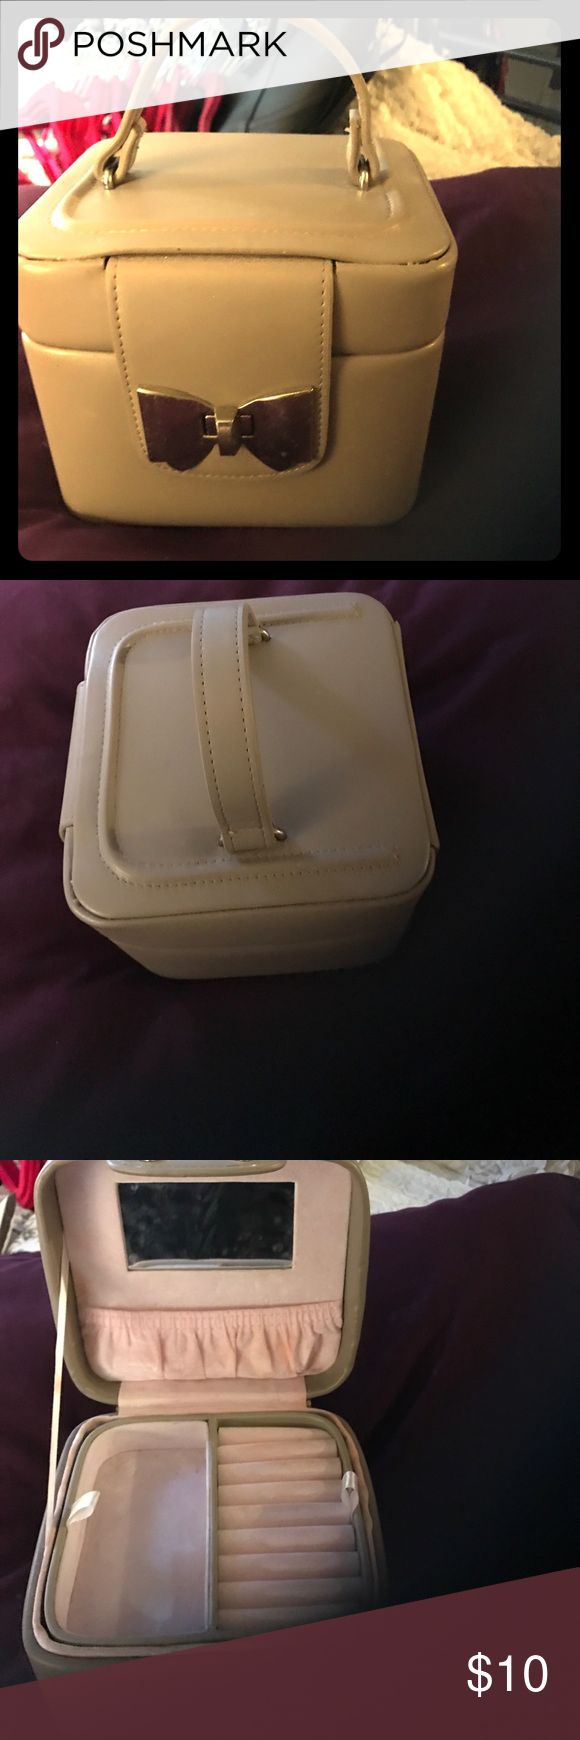 Cream vintage jewelry/makeup bow case Has been used. See photos. Inside has makeup stains but can be cleaned. Outside and top drawer with mirror in good condition. Tuscan Designs Bags Cosmetic Bags & Cases